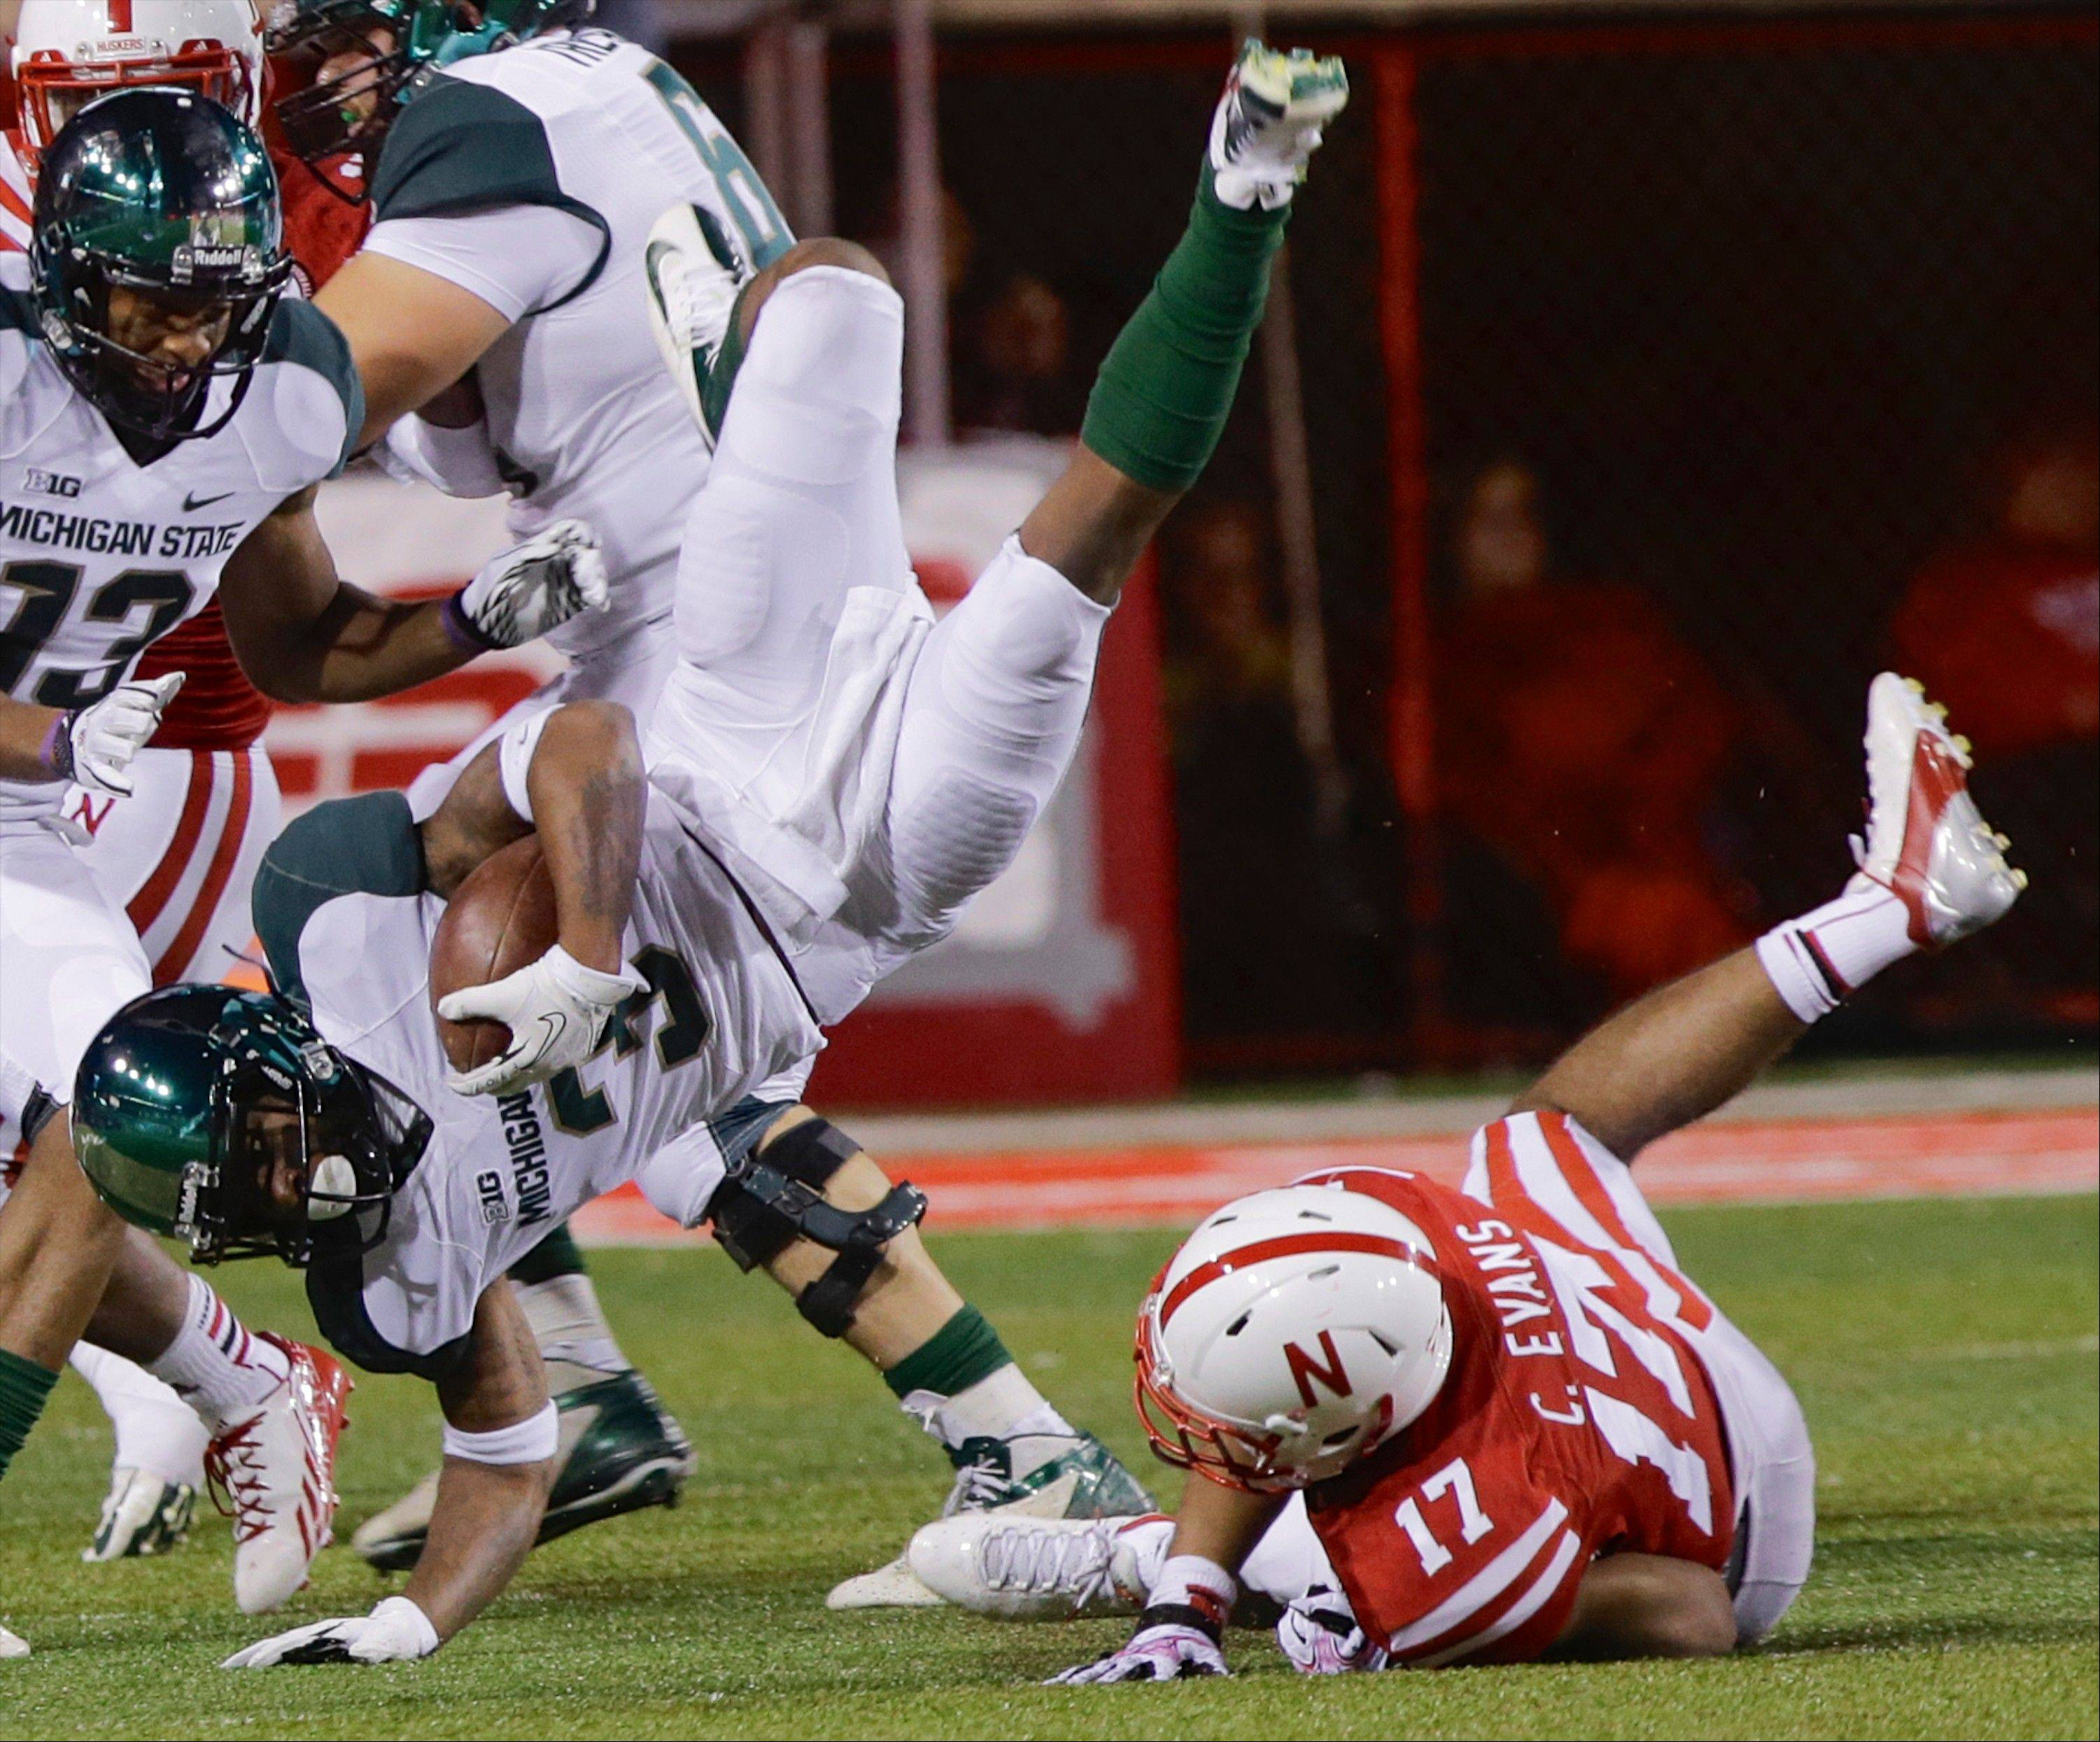 Michigan State wide receiver Macgarrett Kings (3) is upended by Nebraska cornerback Ciante Evans (17) during Saturday's game in Lincoln, Neb. Michigan State won 41-28.